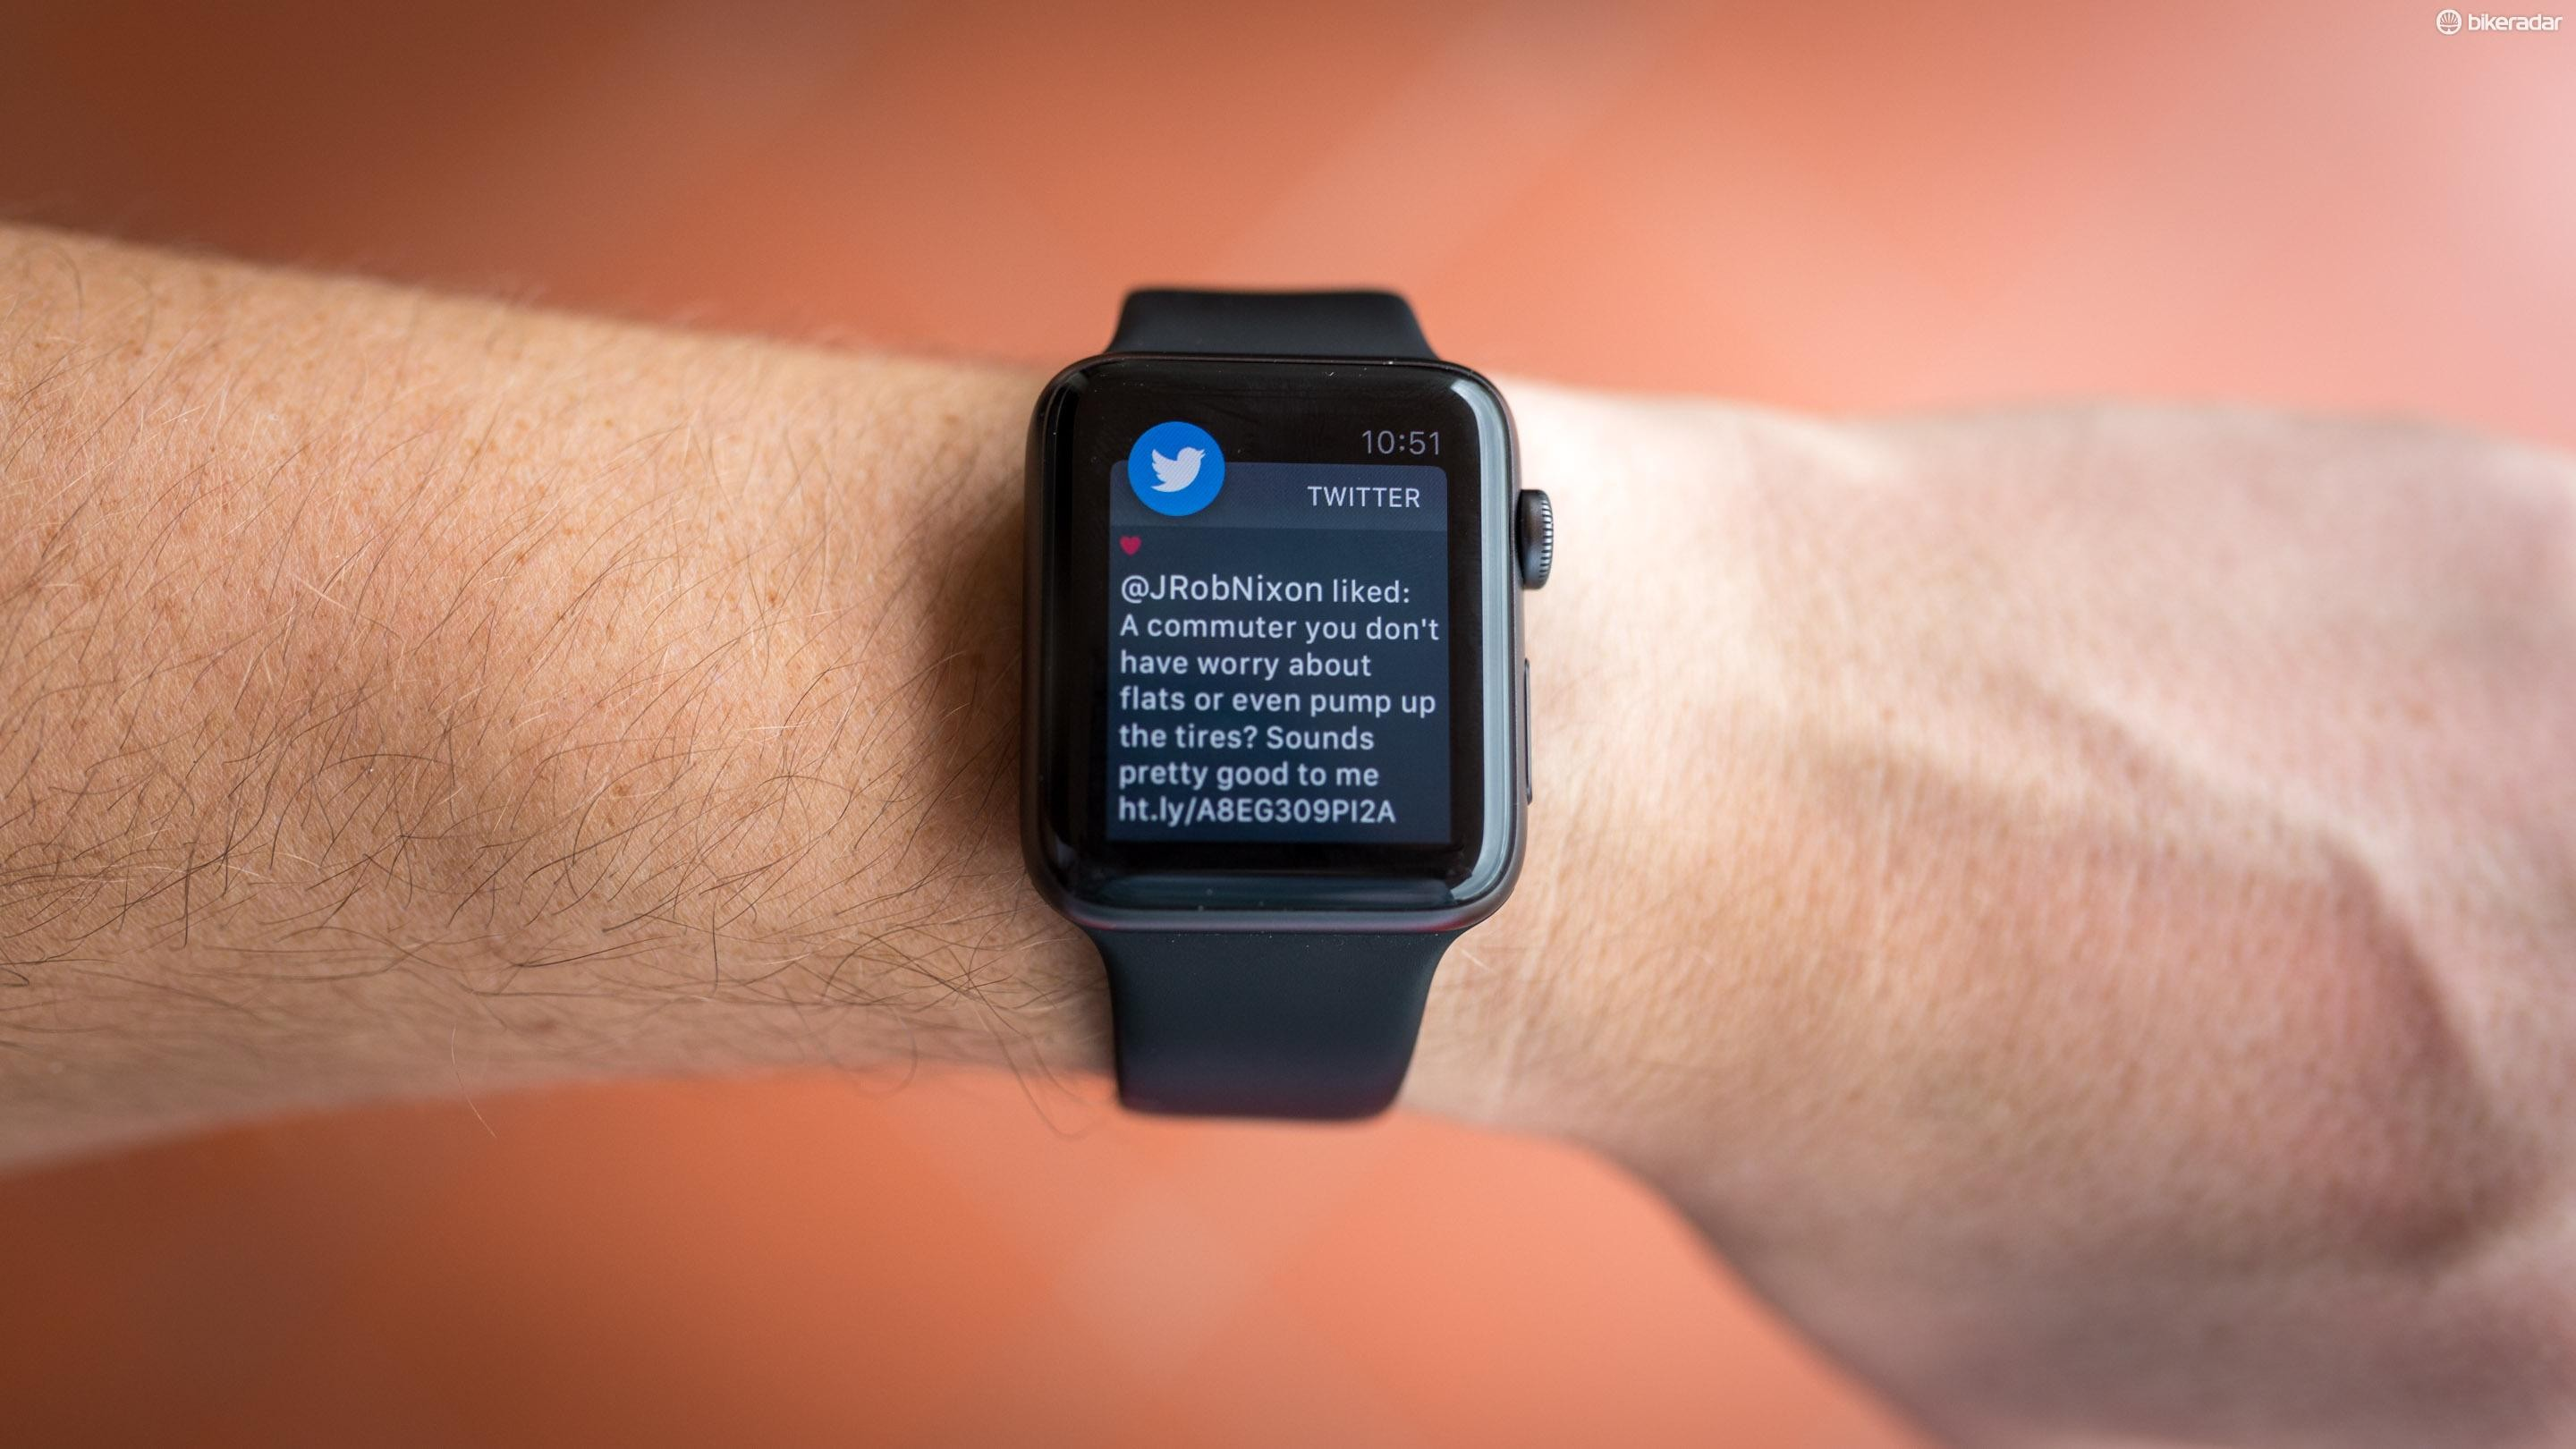 The watch shows notifications just like your phone does, but you can pick and choose which apps you want it to show